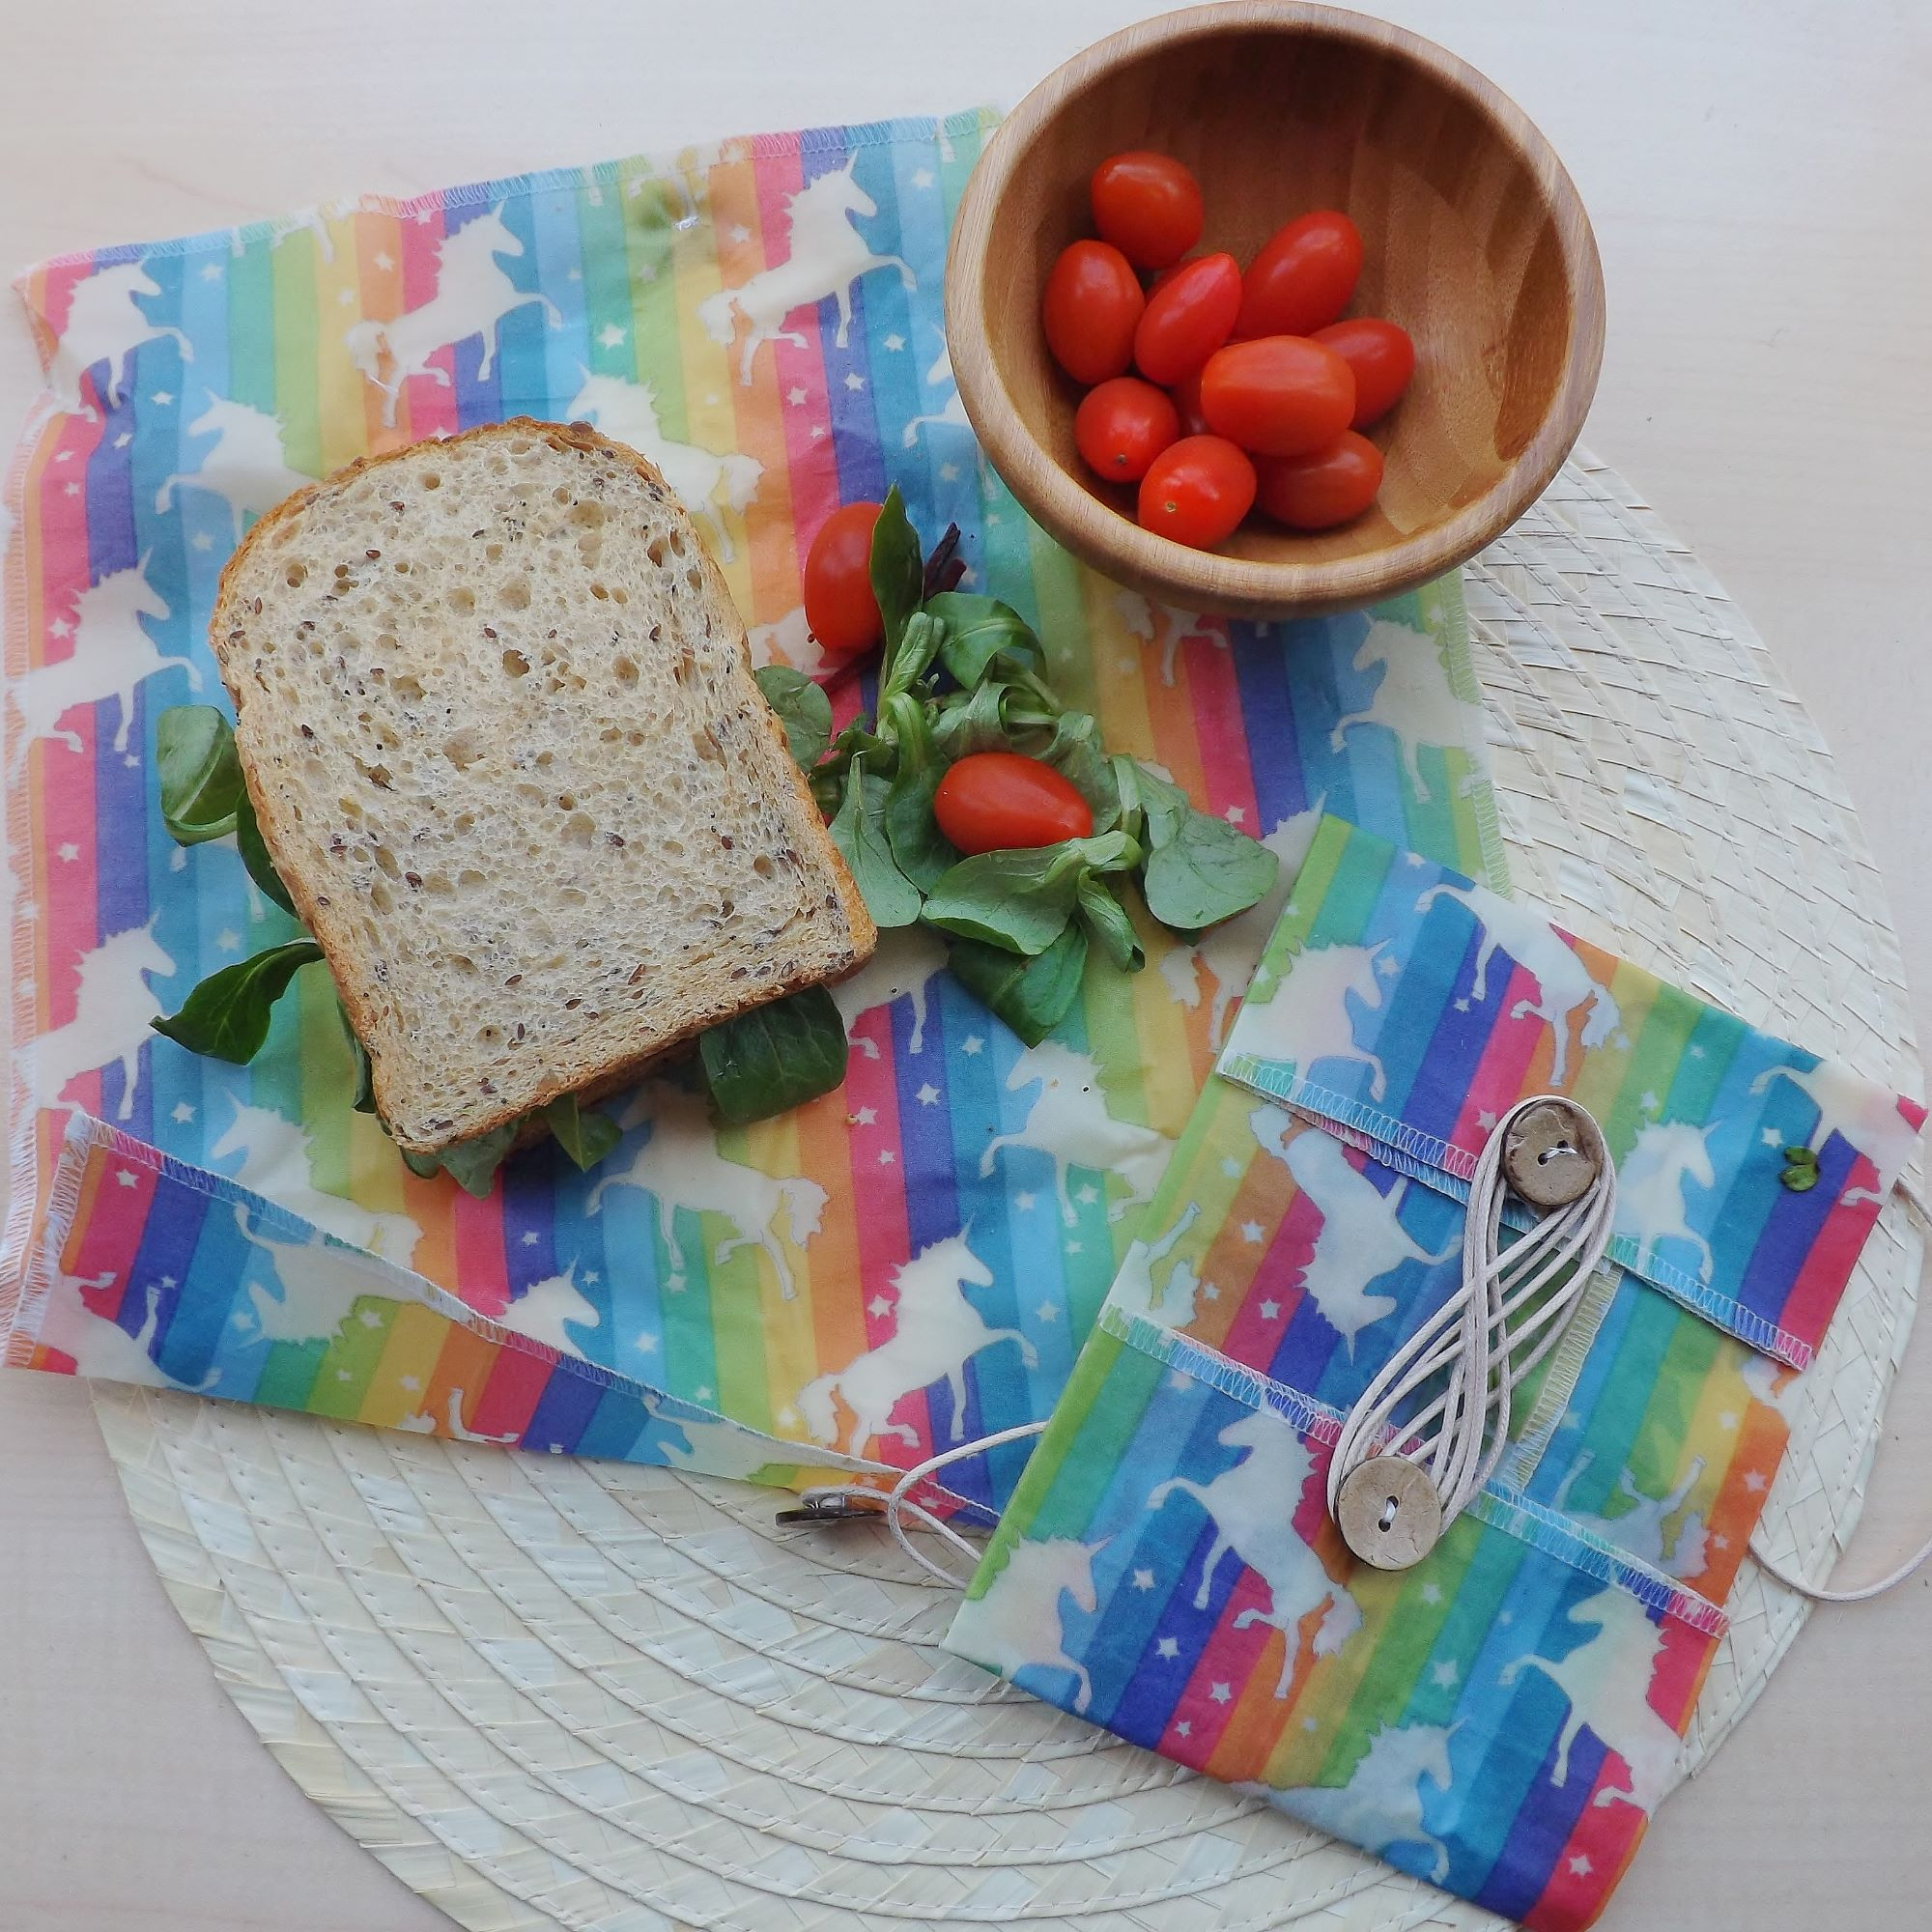 ButtyWrap with sandwich and tomatoes